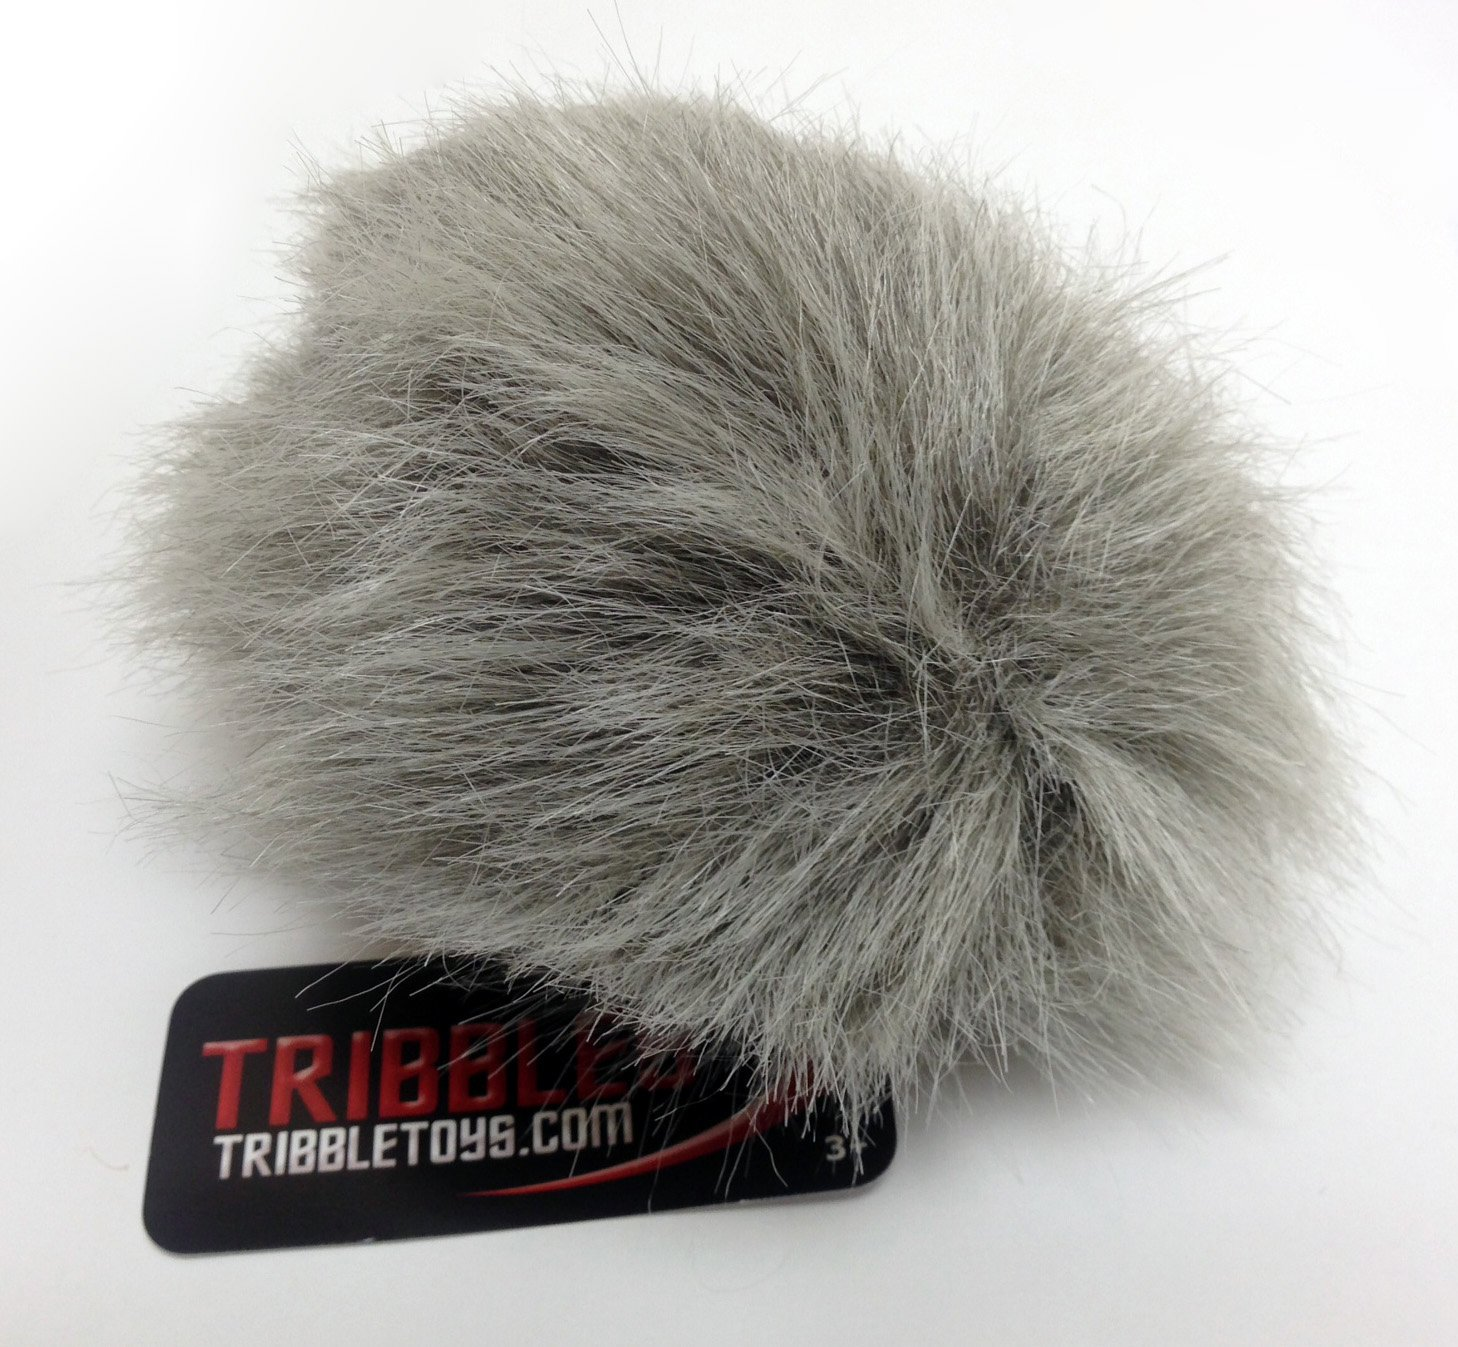 Star Trek Tribble, Gray - New Dual Sound Version! - Medium Size by Tribble Toys (Image #1)